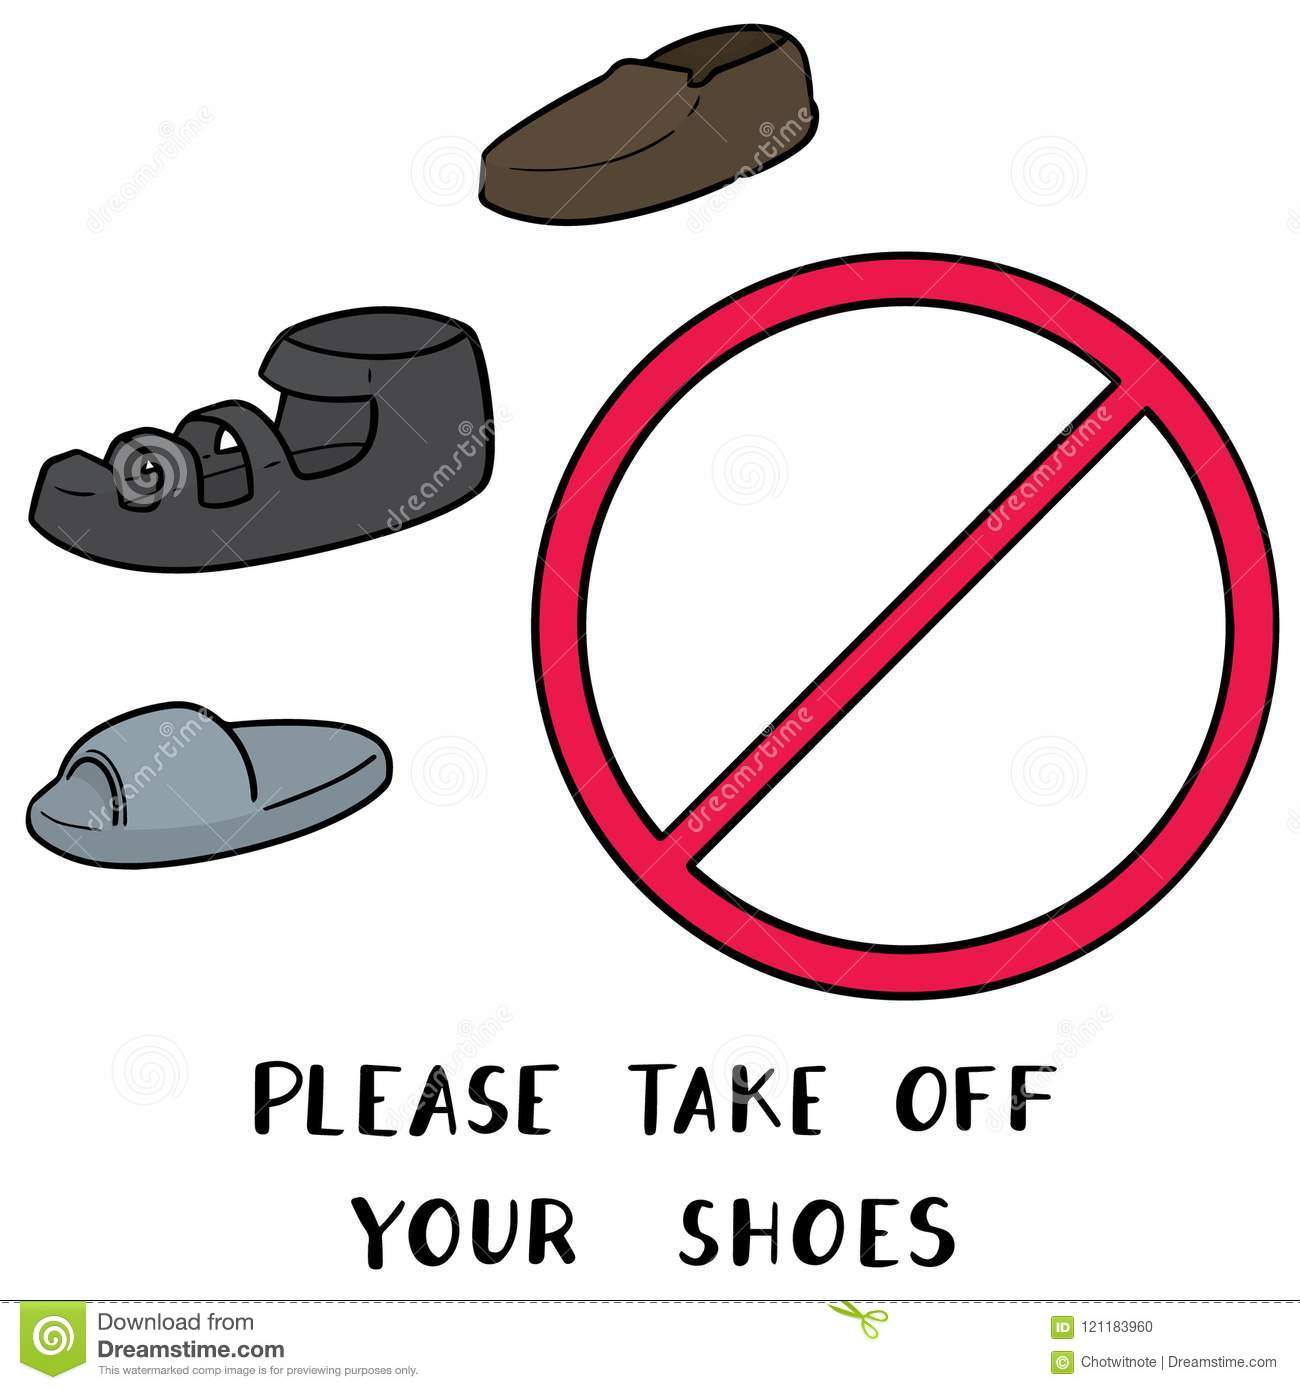 photograph regarding Please Take Off Your Shoes Sign Printable referred to as Just take Off Sneakers Indication Inventory Examples 15 Consider Off Footwear